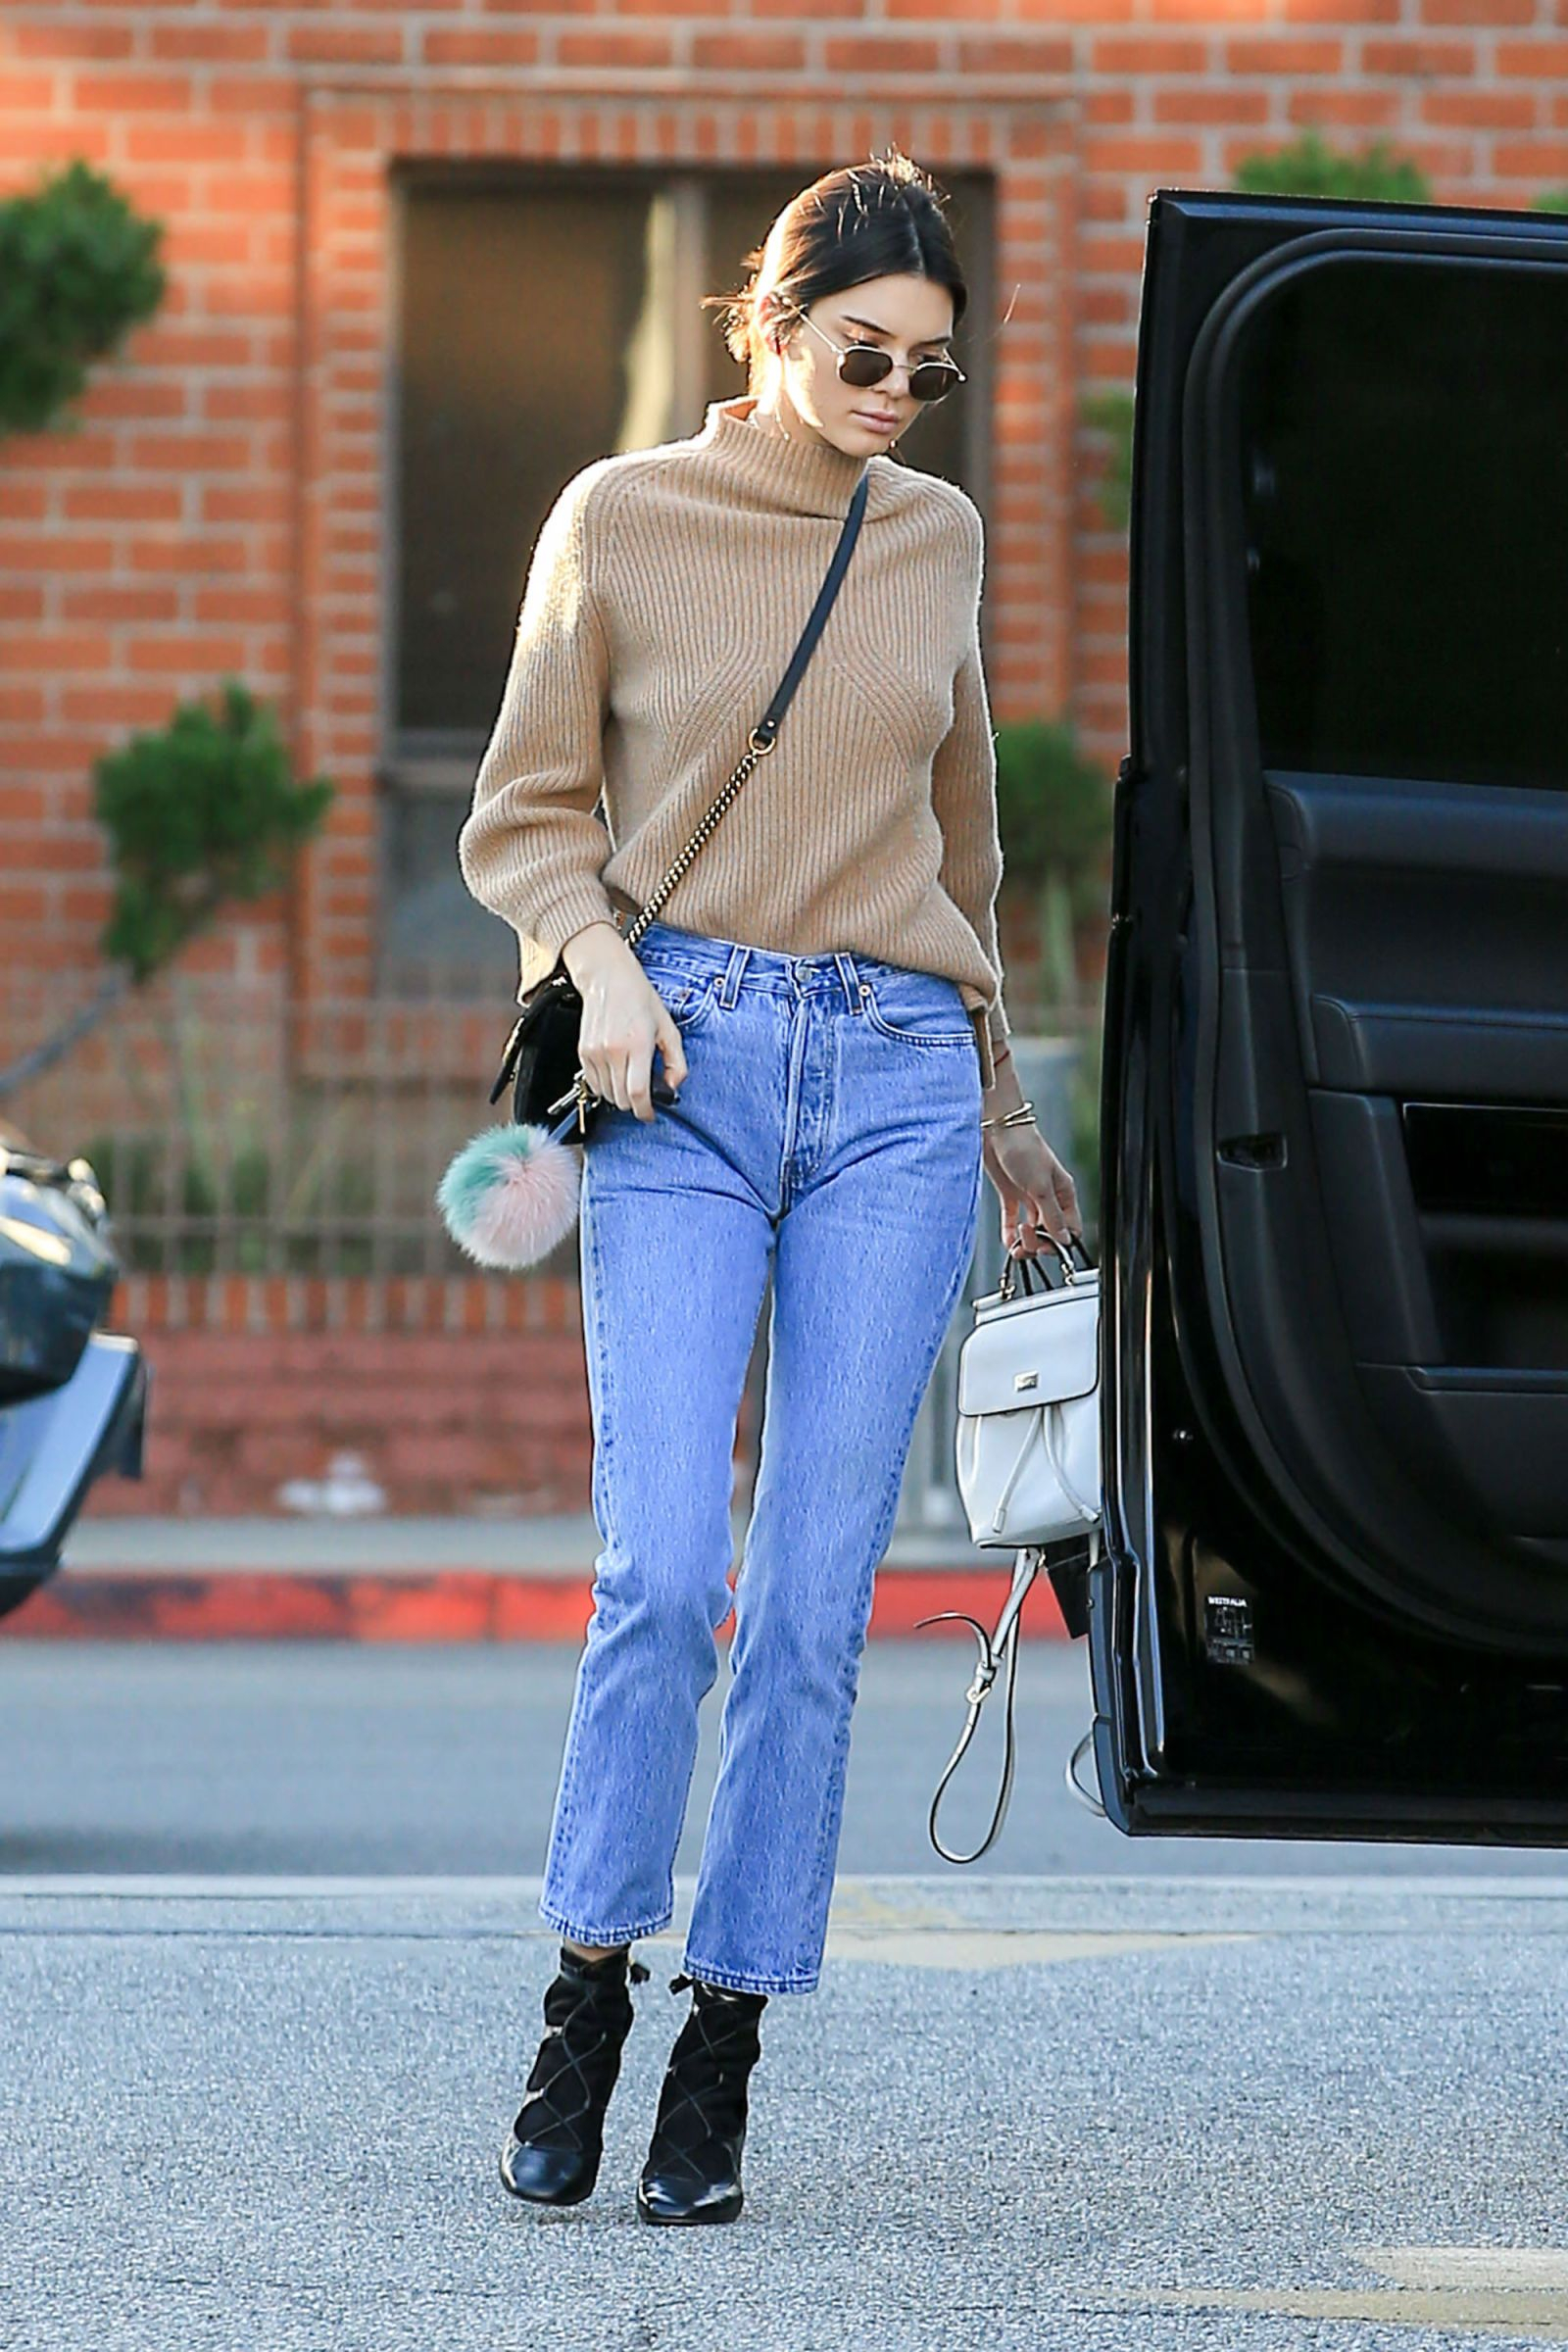 6be0f24b499 Kendall Jenner - In a knit camel turtleneck, high-waisted jeans, lace-up  leather boots, a crossbody bag, white leather backpack and rounded  sunglasses while ...